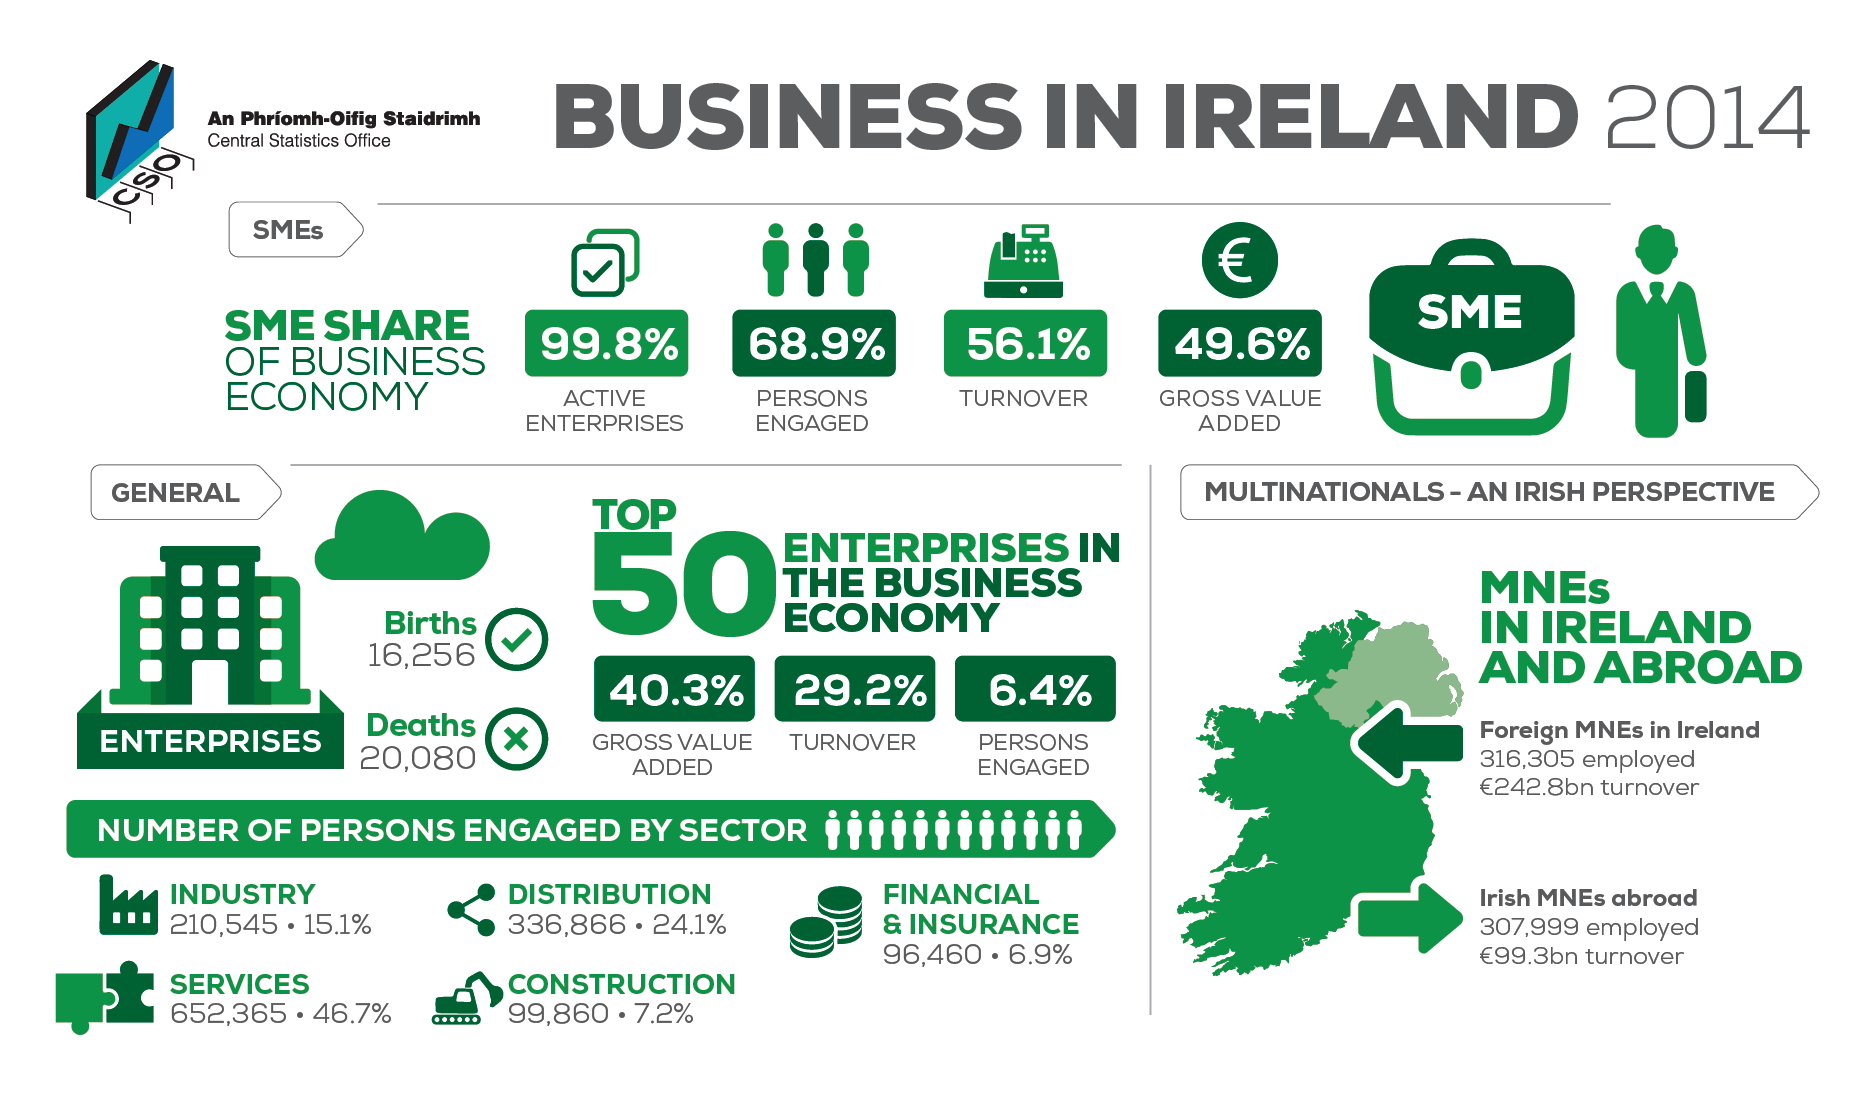 Business in Ireland 2014 Infographic image